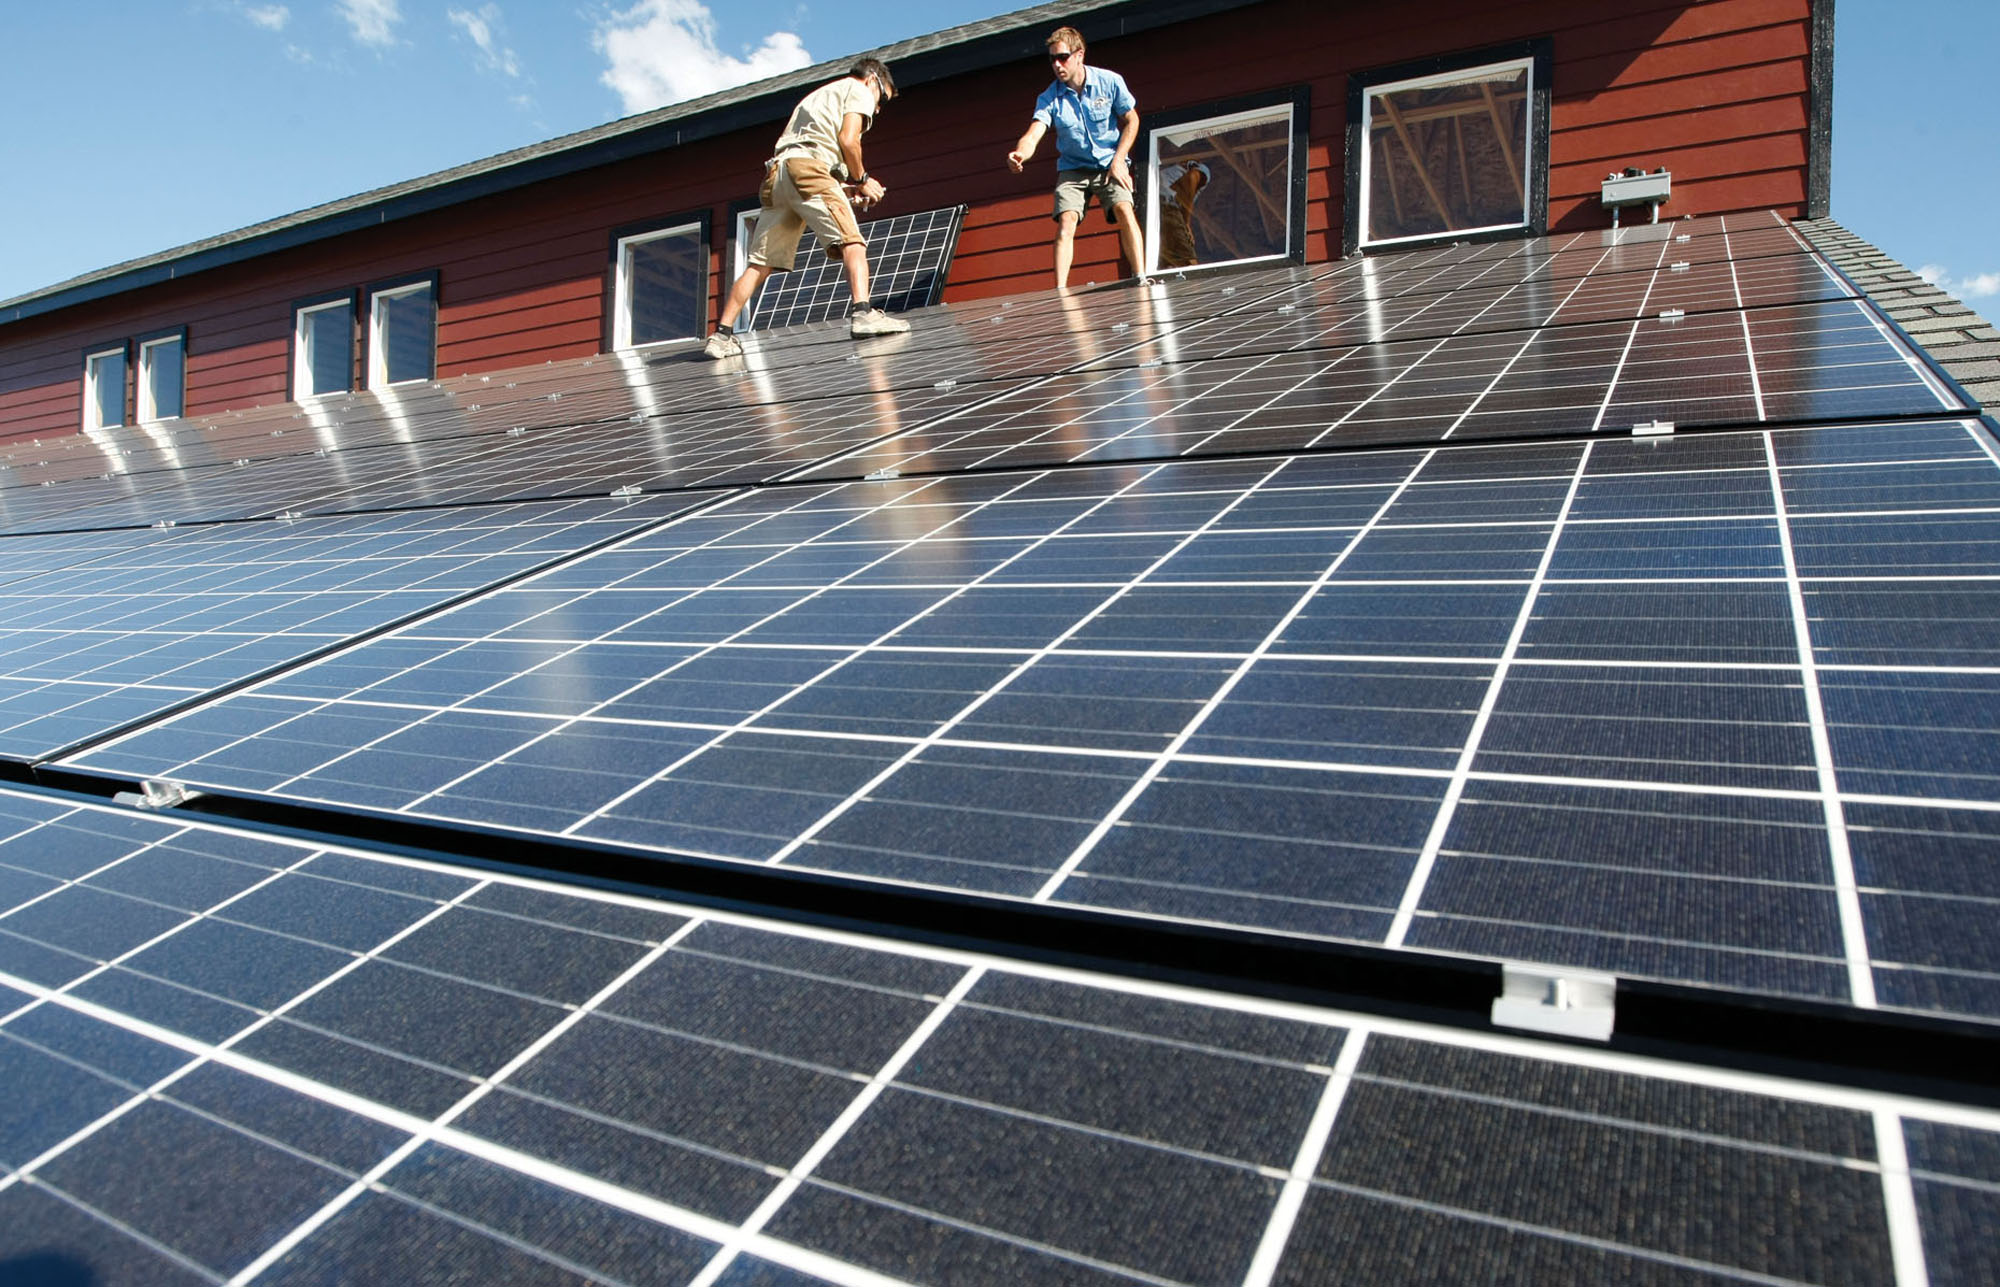 Photo: Rooftop solar panels in Hesperus, Colorado